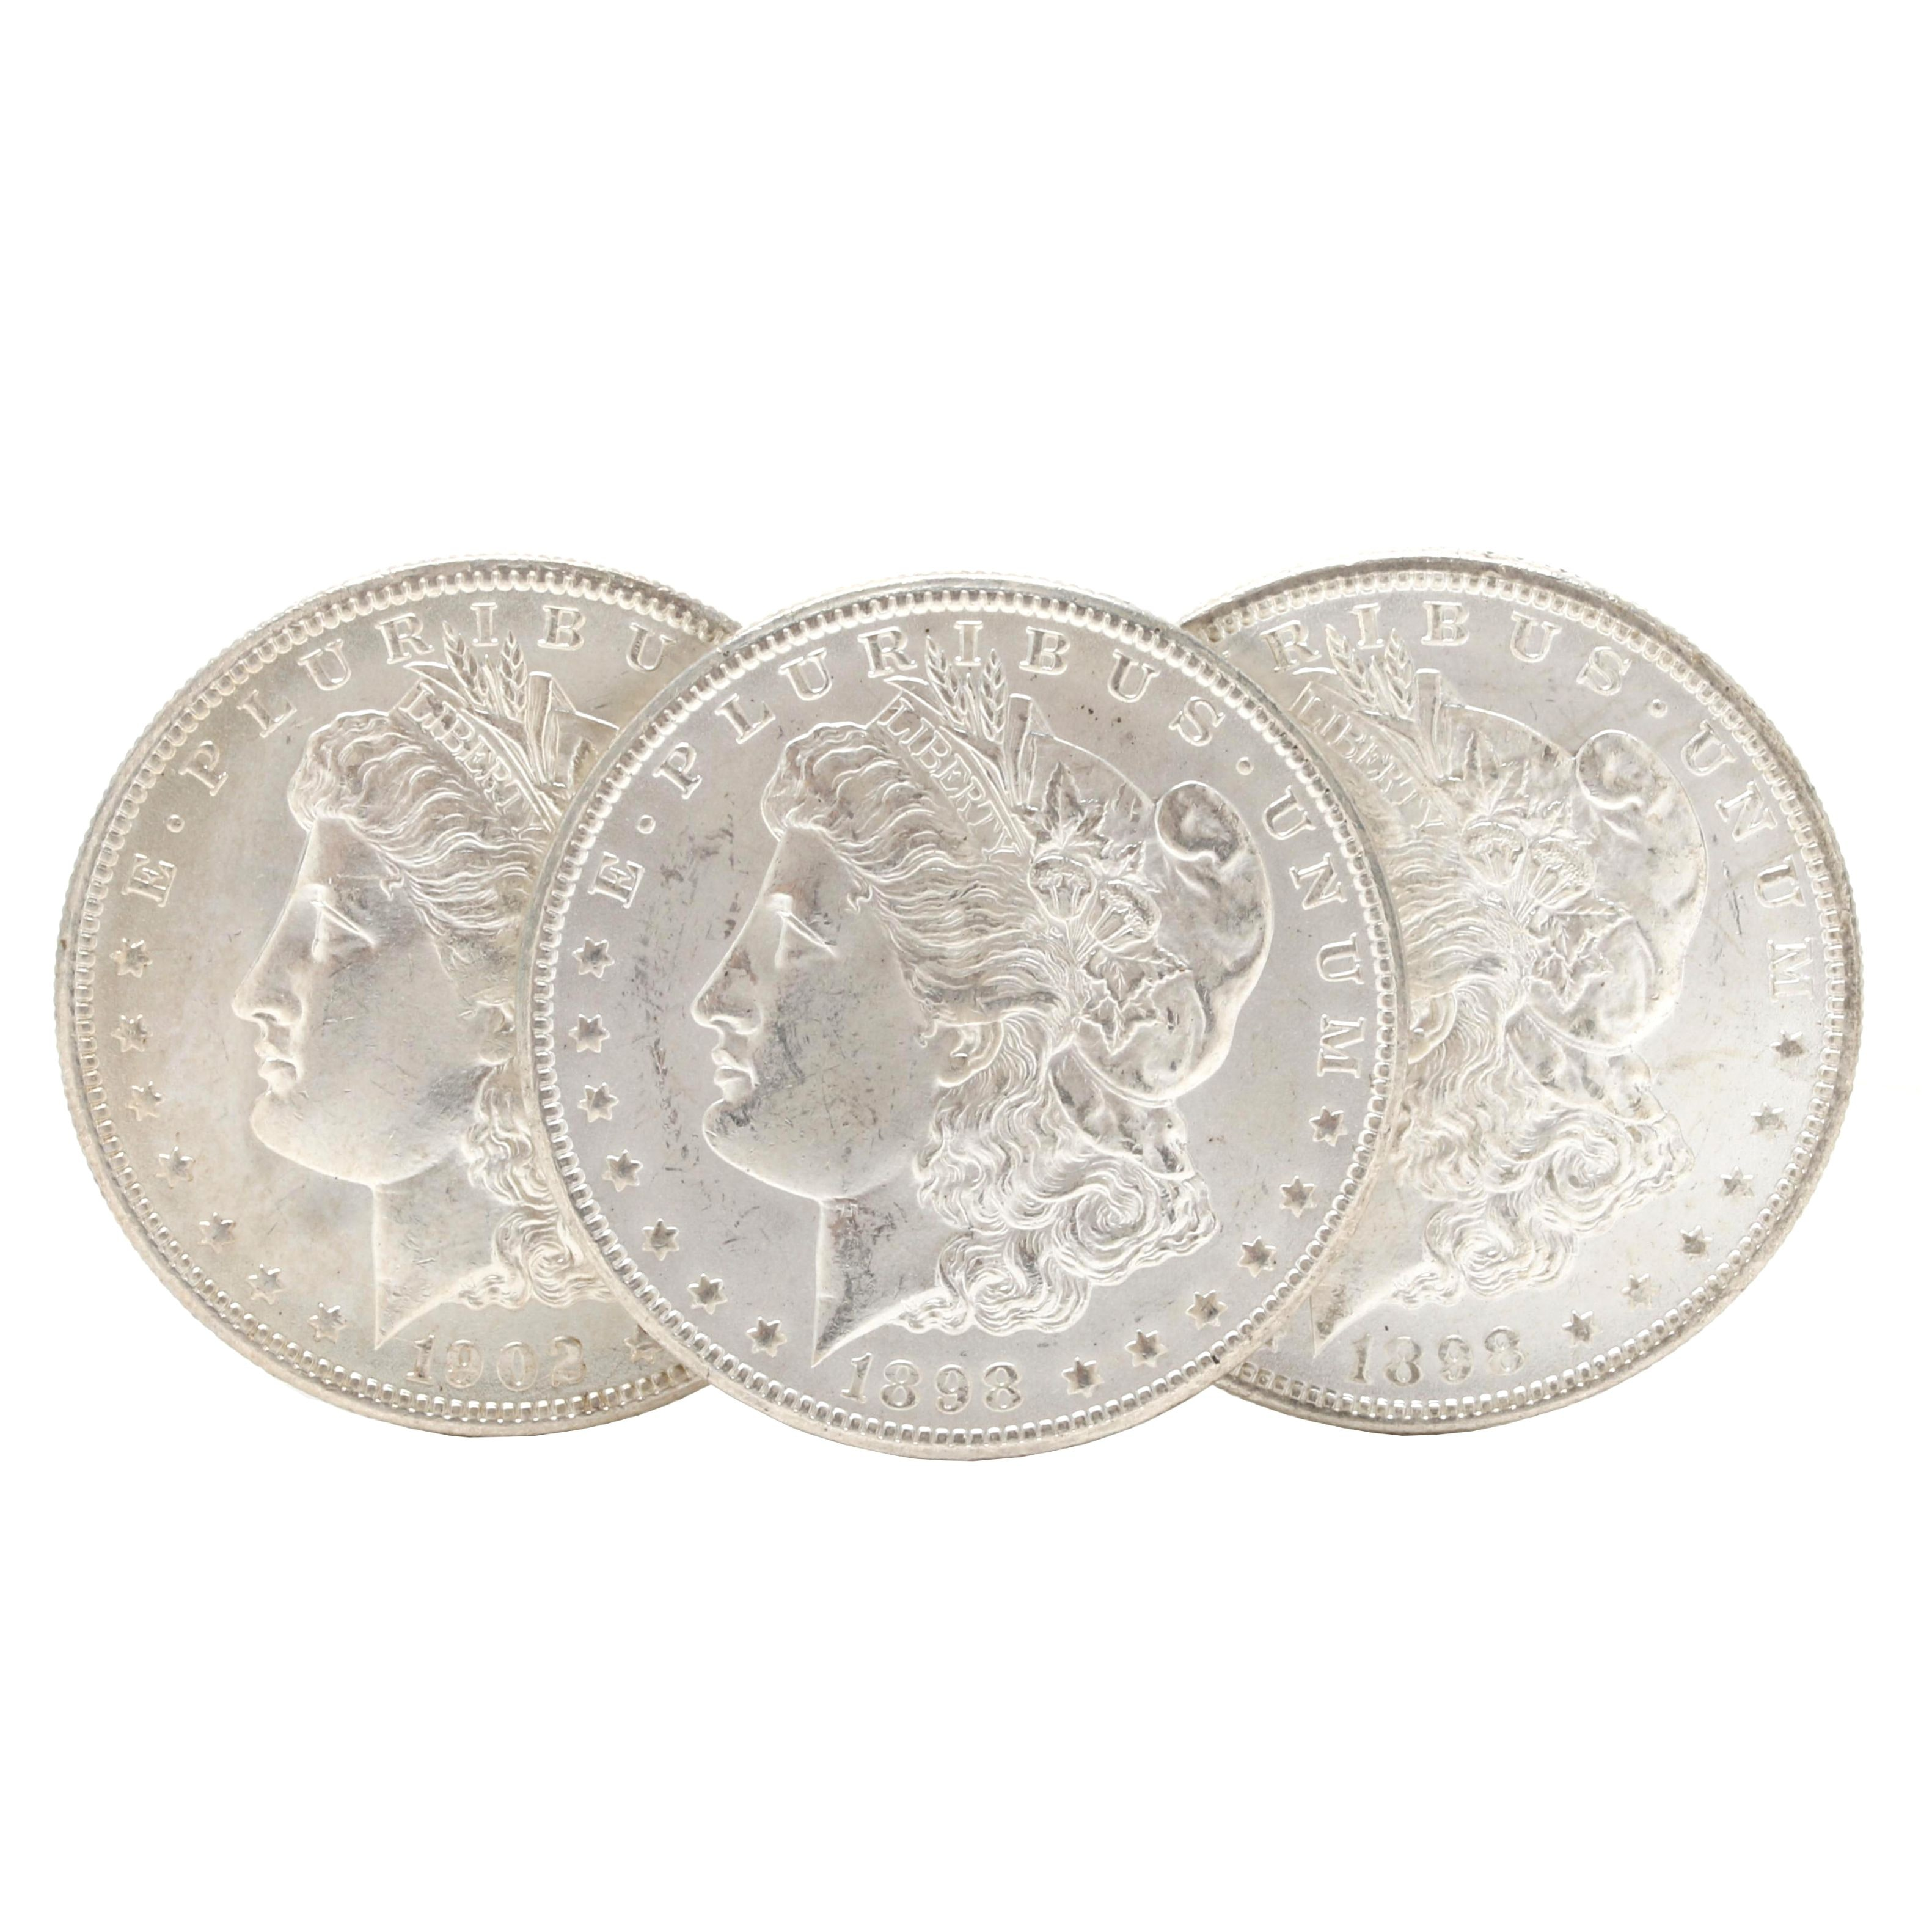 Three New Orleans Morgan Silver Dollars